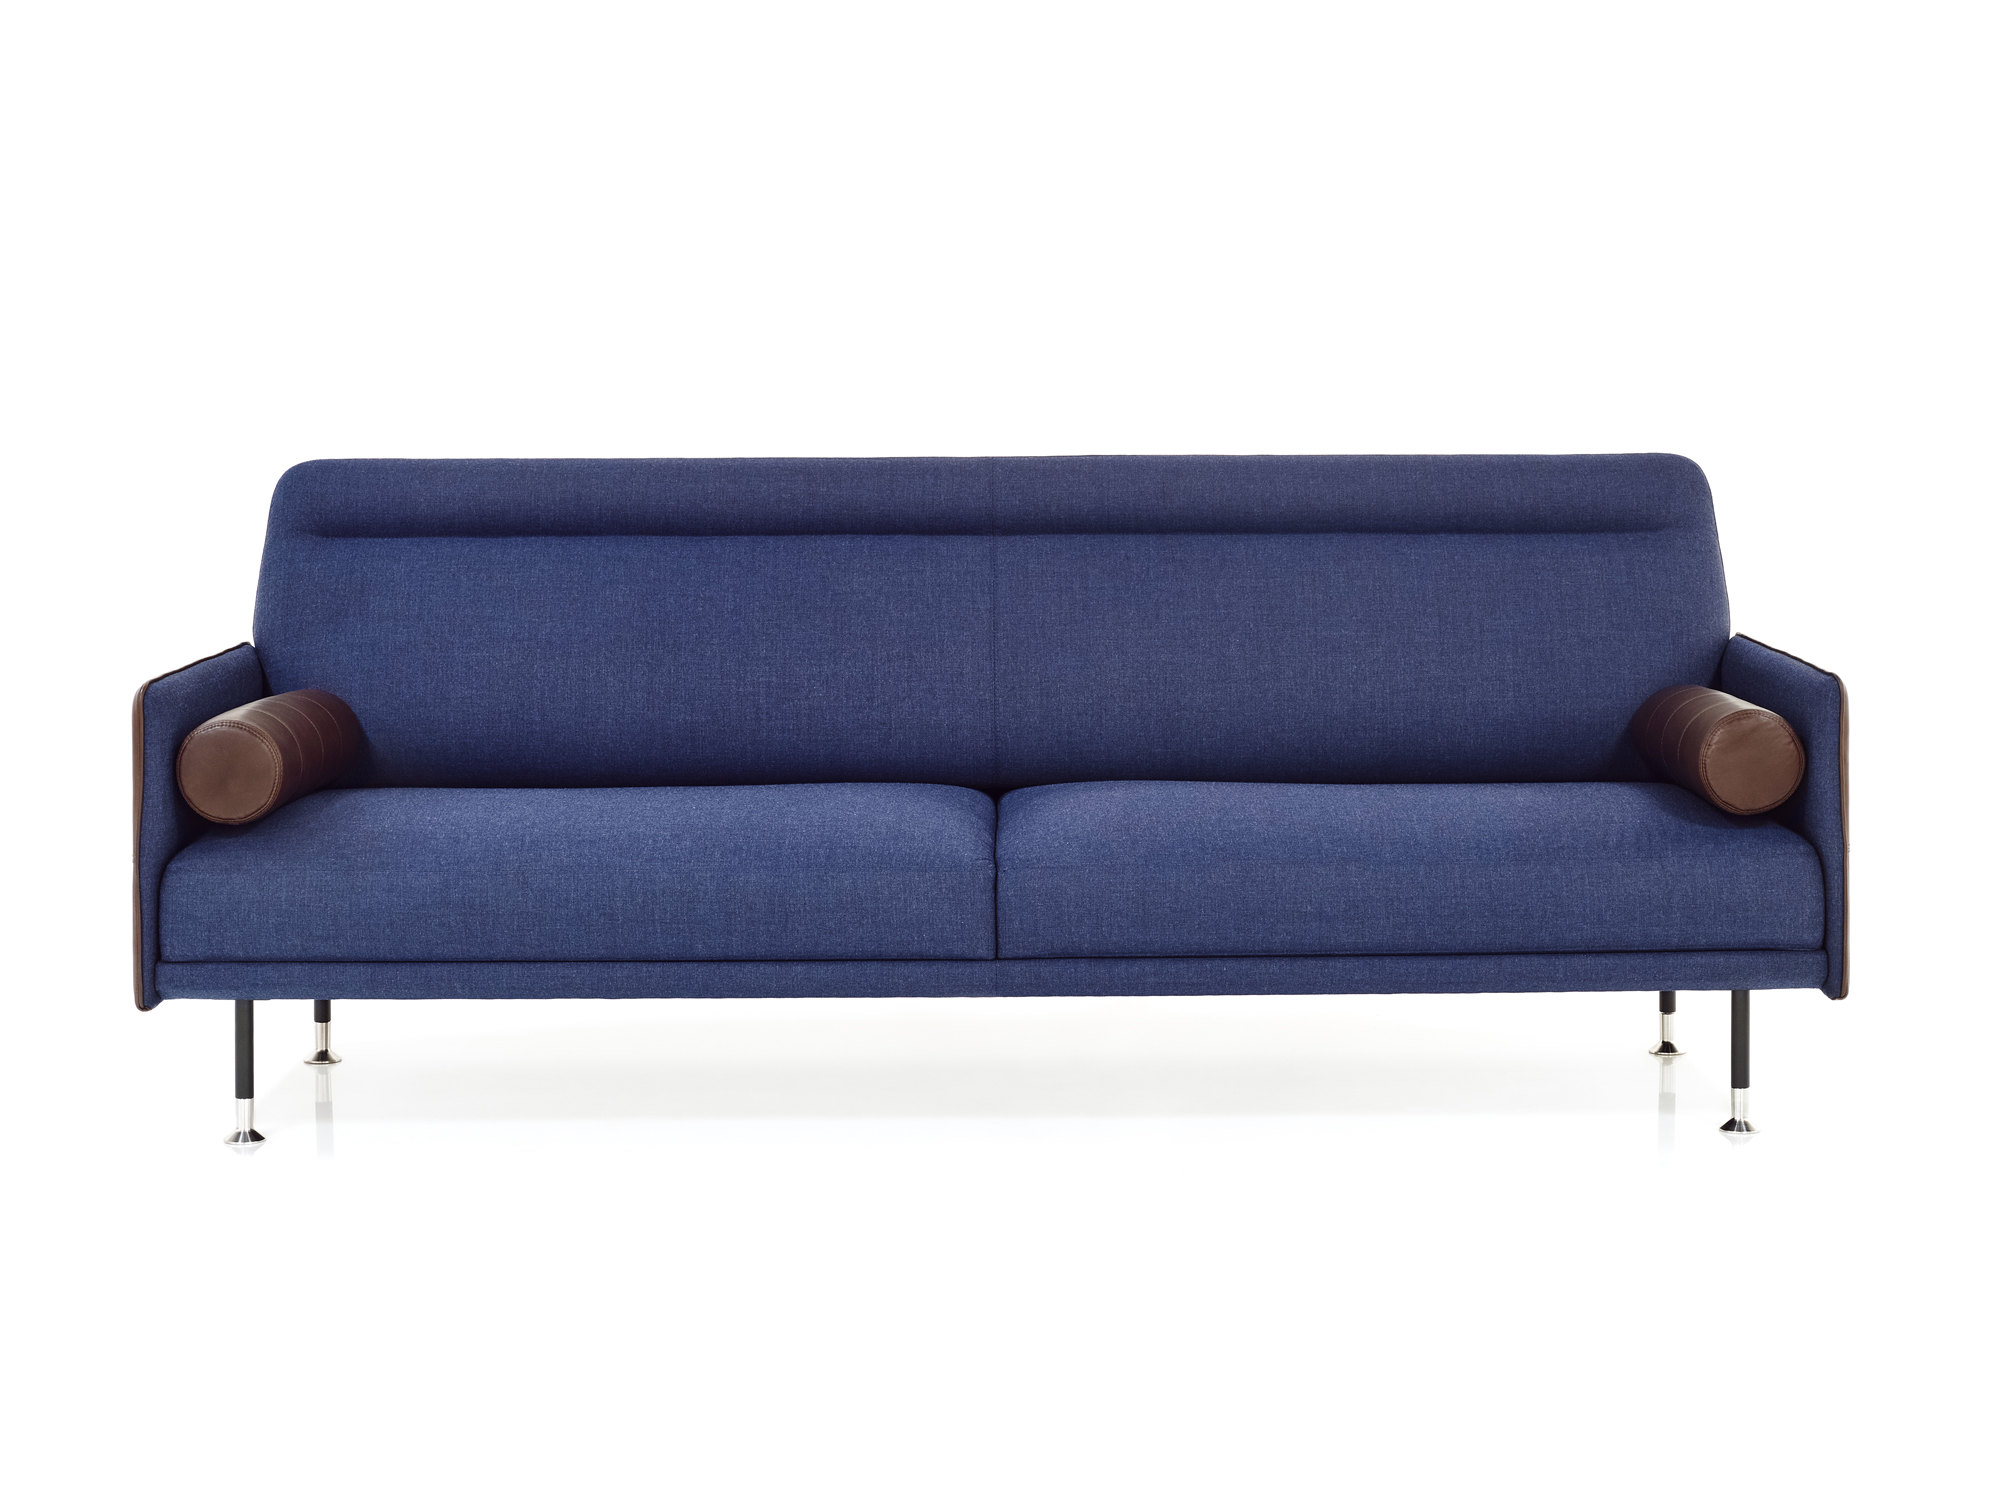 Melange Sofa For Wittmann - New project launched in IMM Cologne 2018